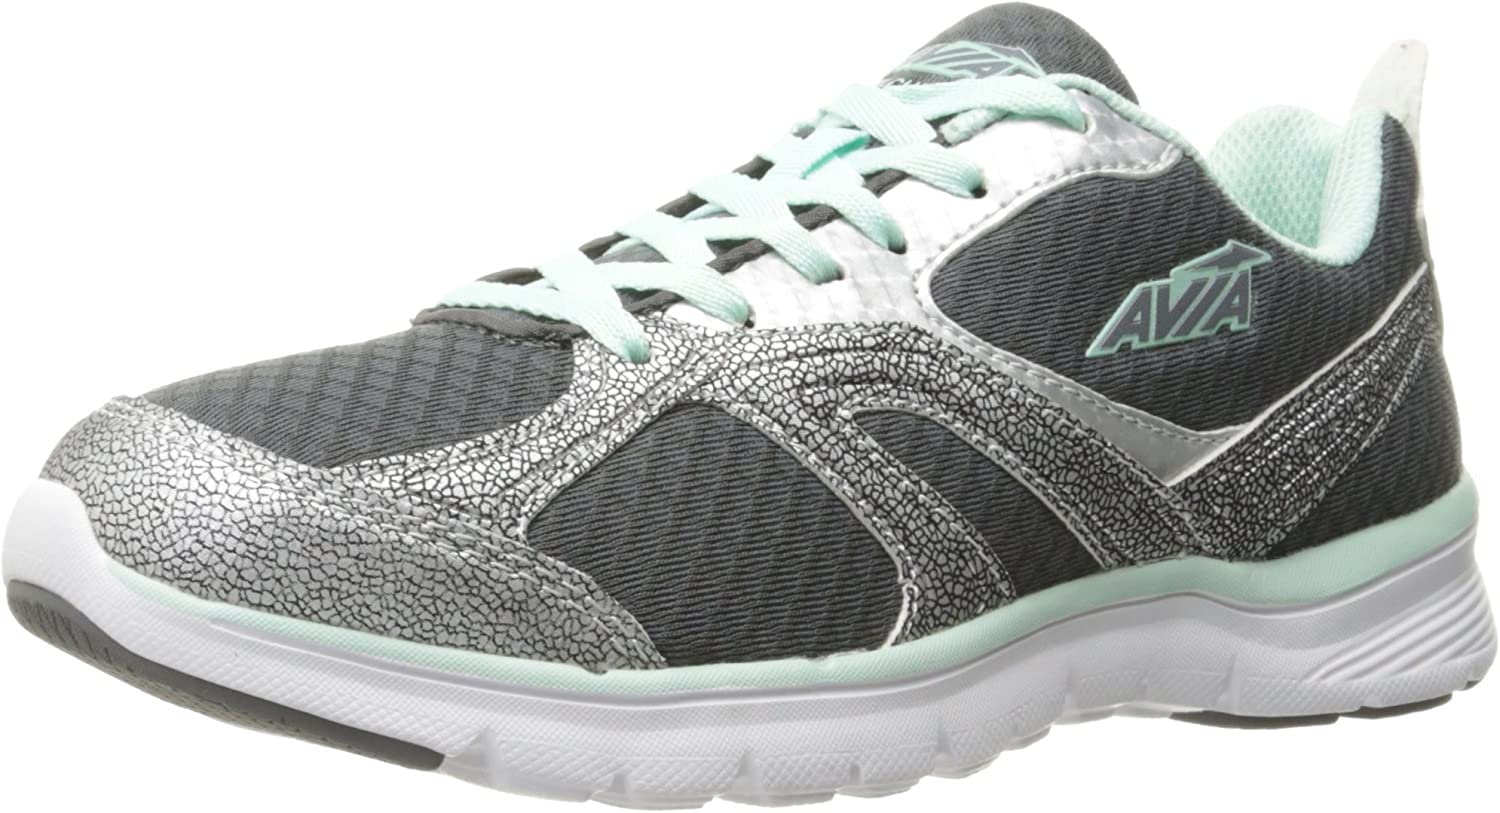 Avia Womens Avi-Cube Running shoes